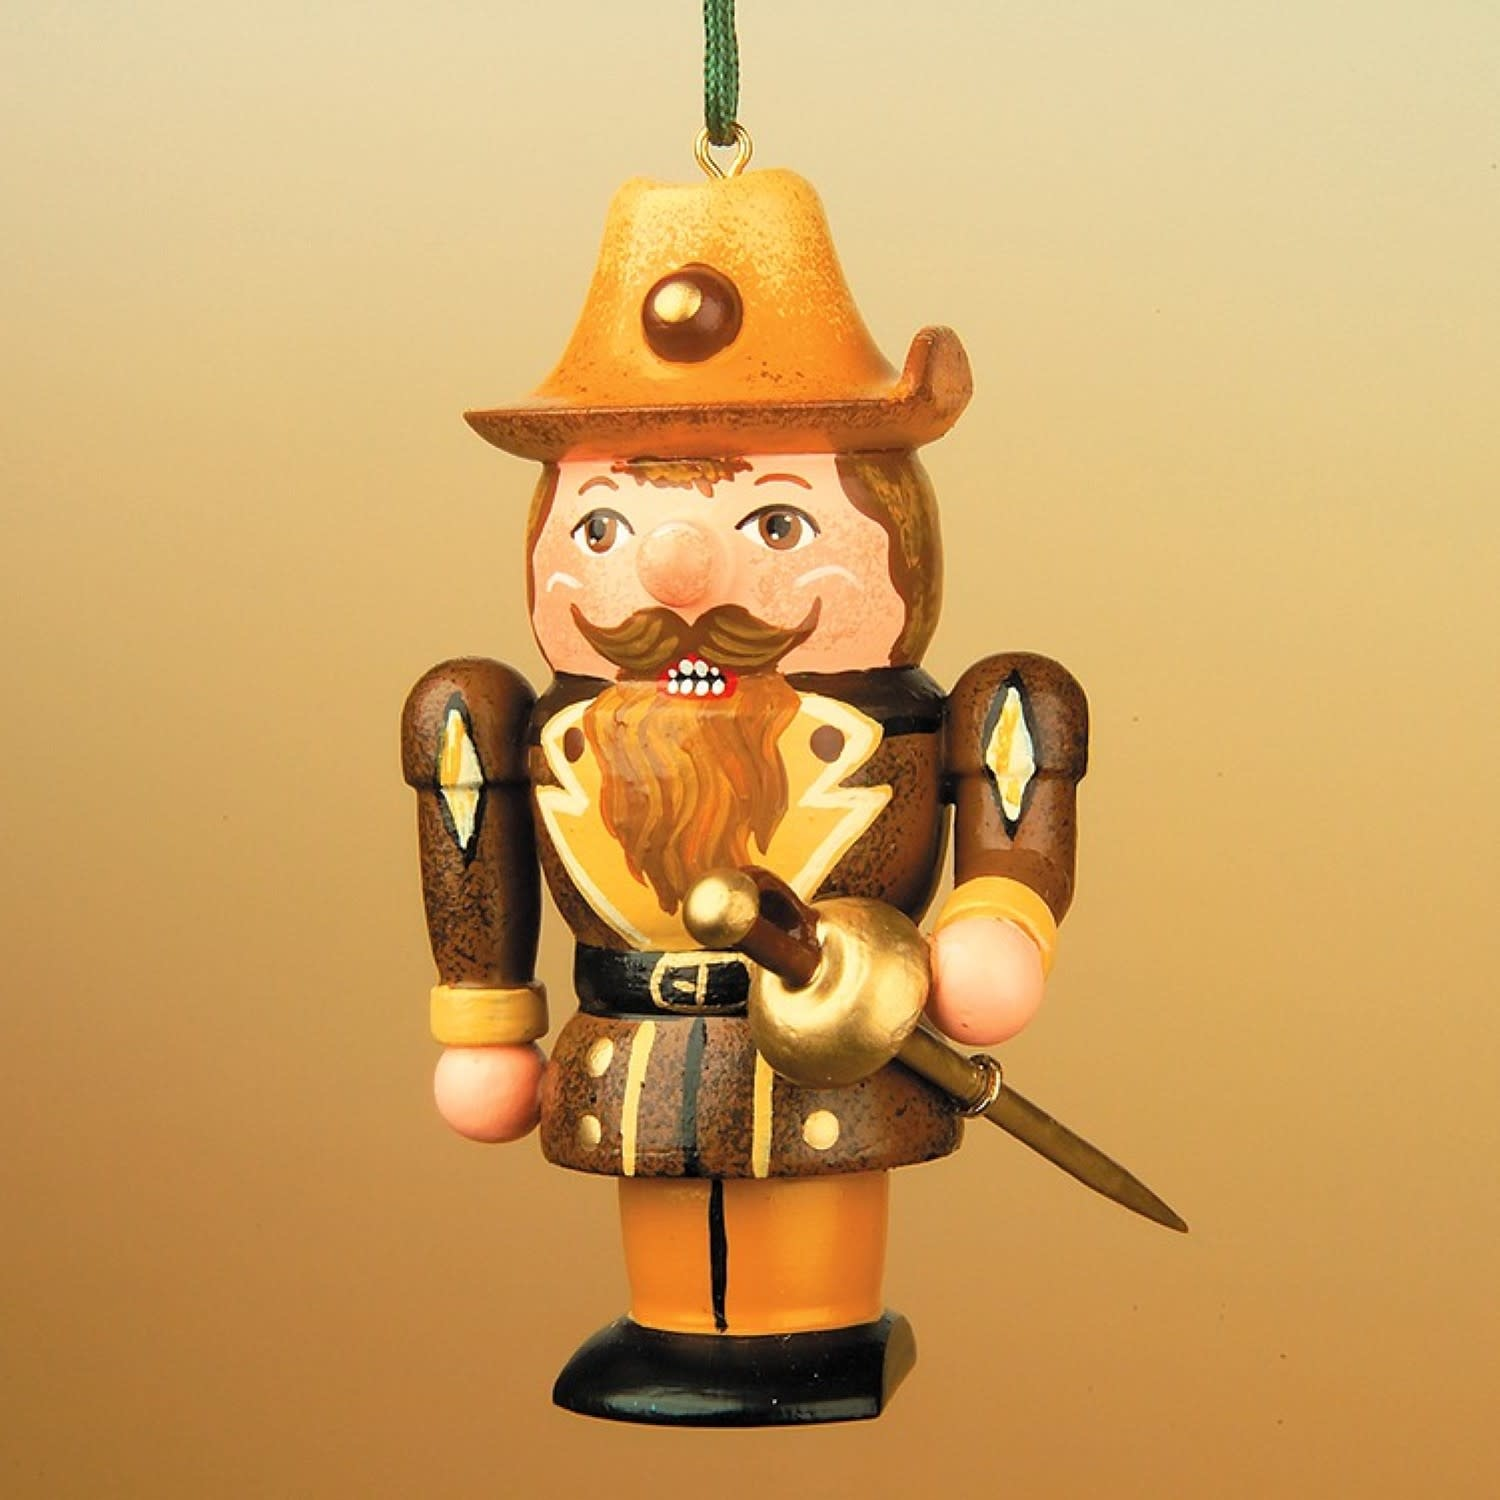 130h0004 Nutcracker Musketeer - 2.75 inches